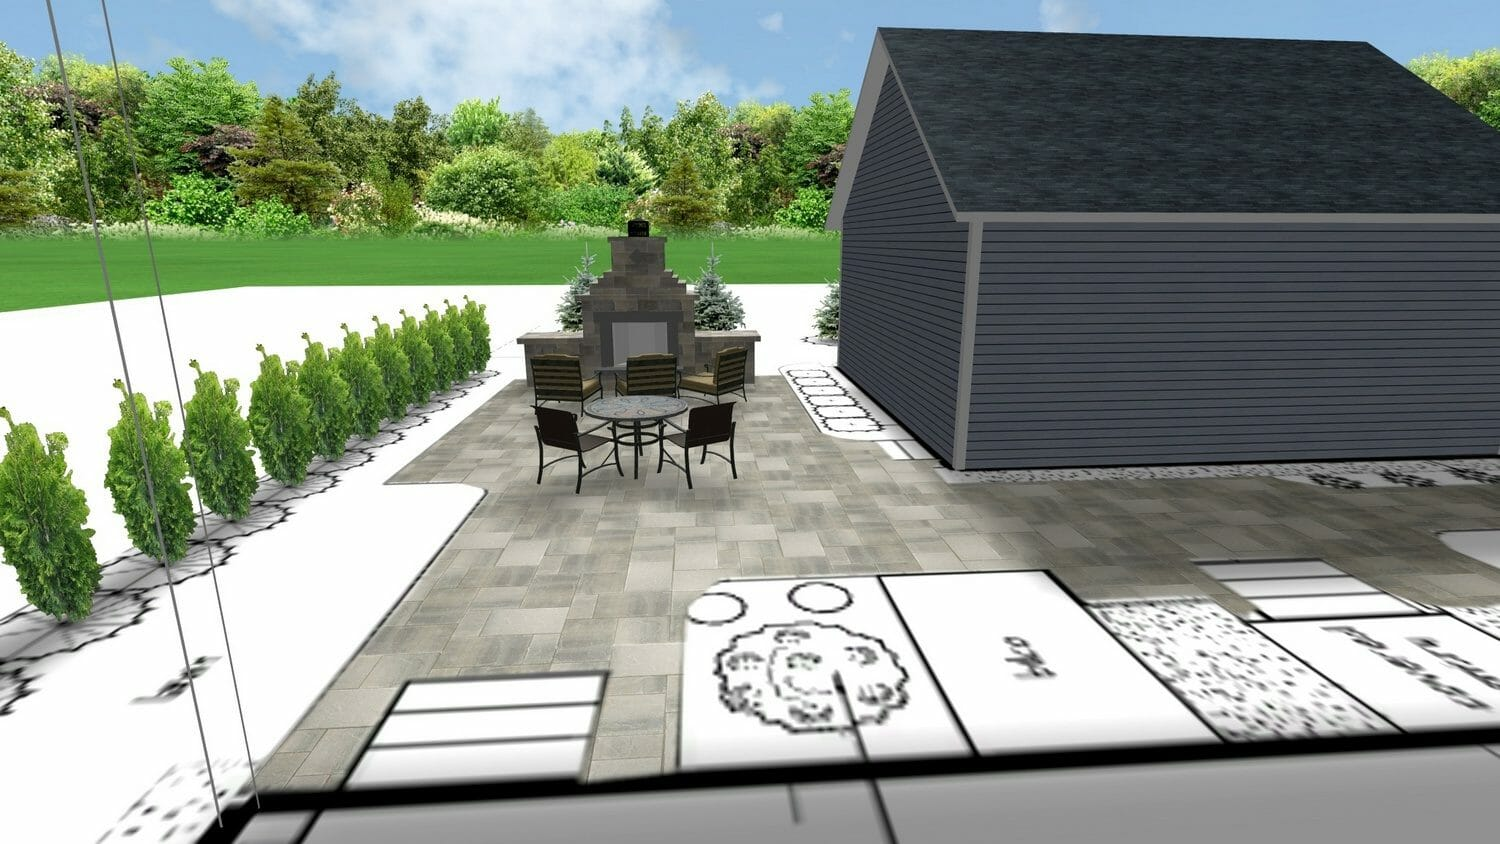 Troy NY landscape design services contractors 1500x844 - Design services for Landscape Contractors